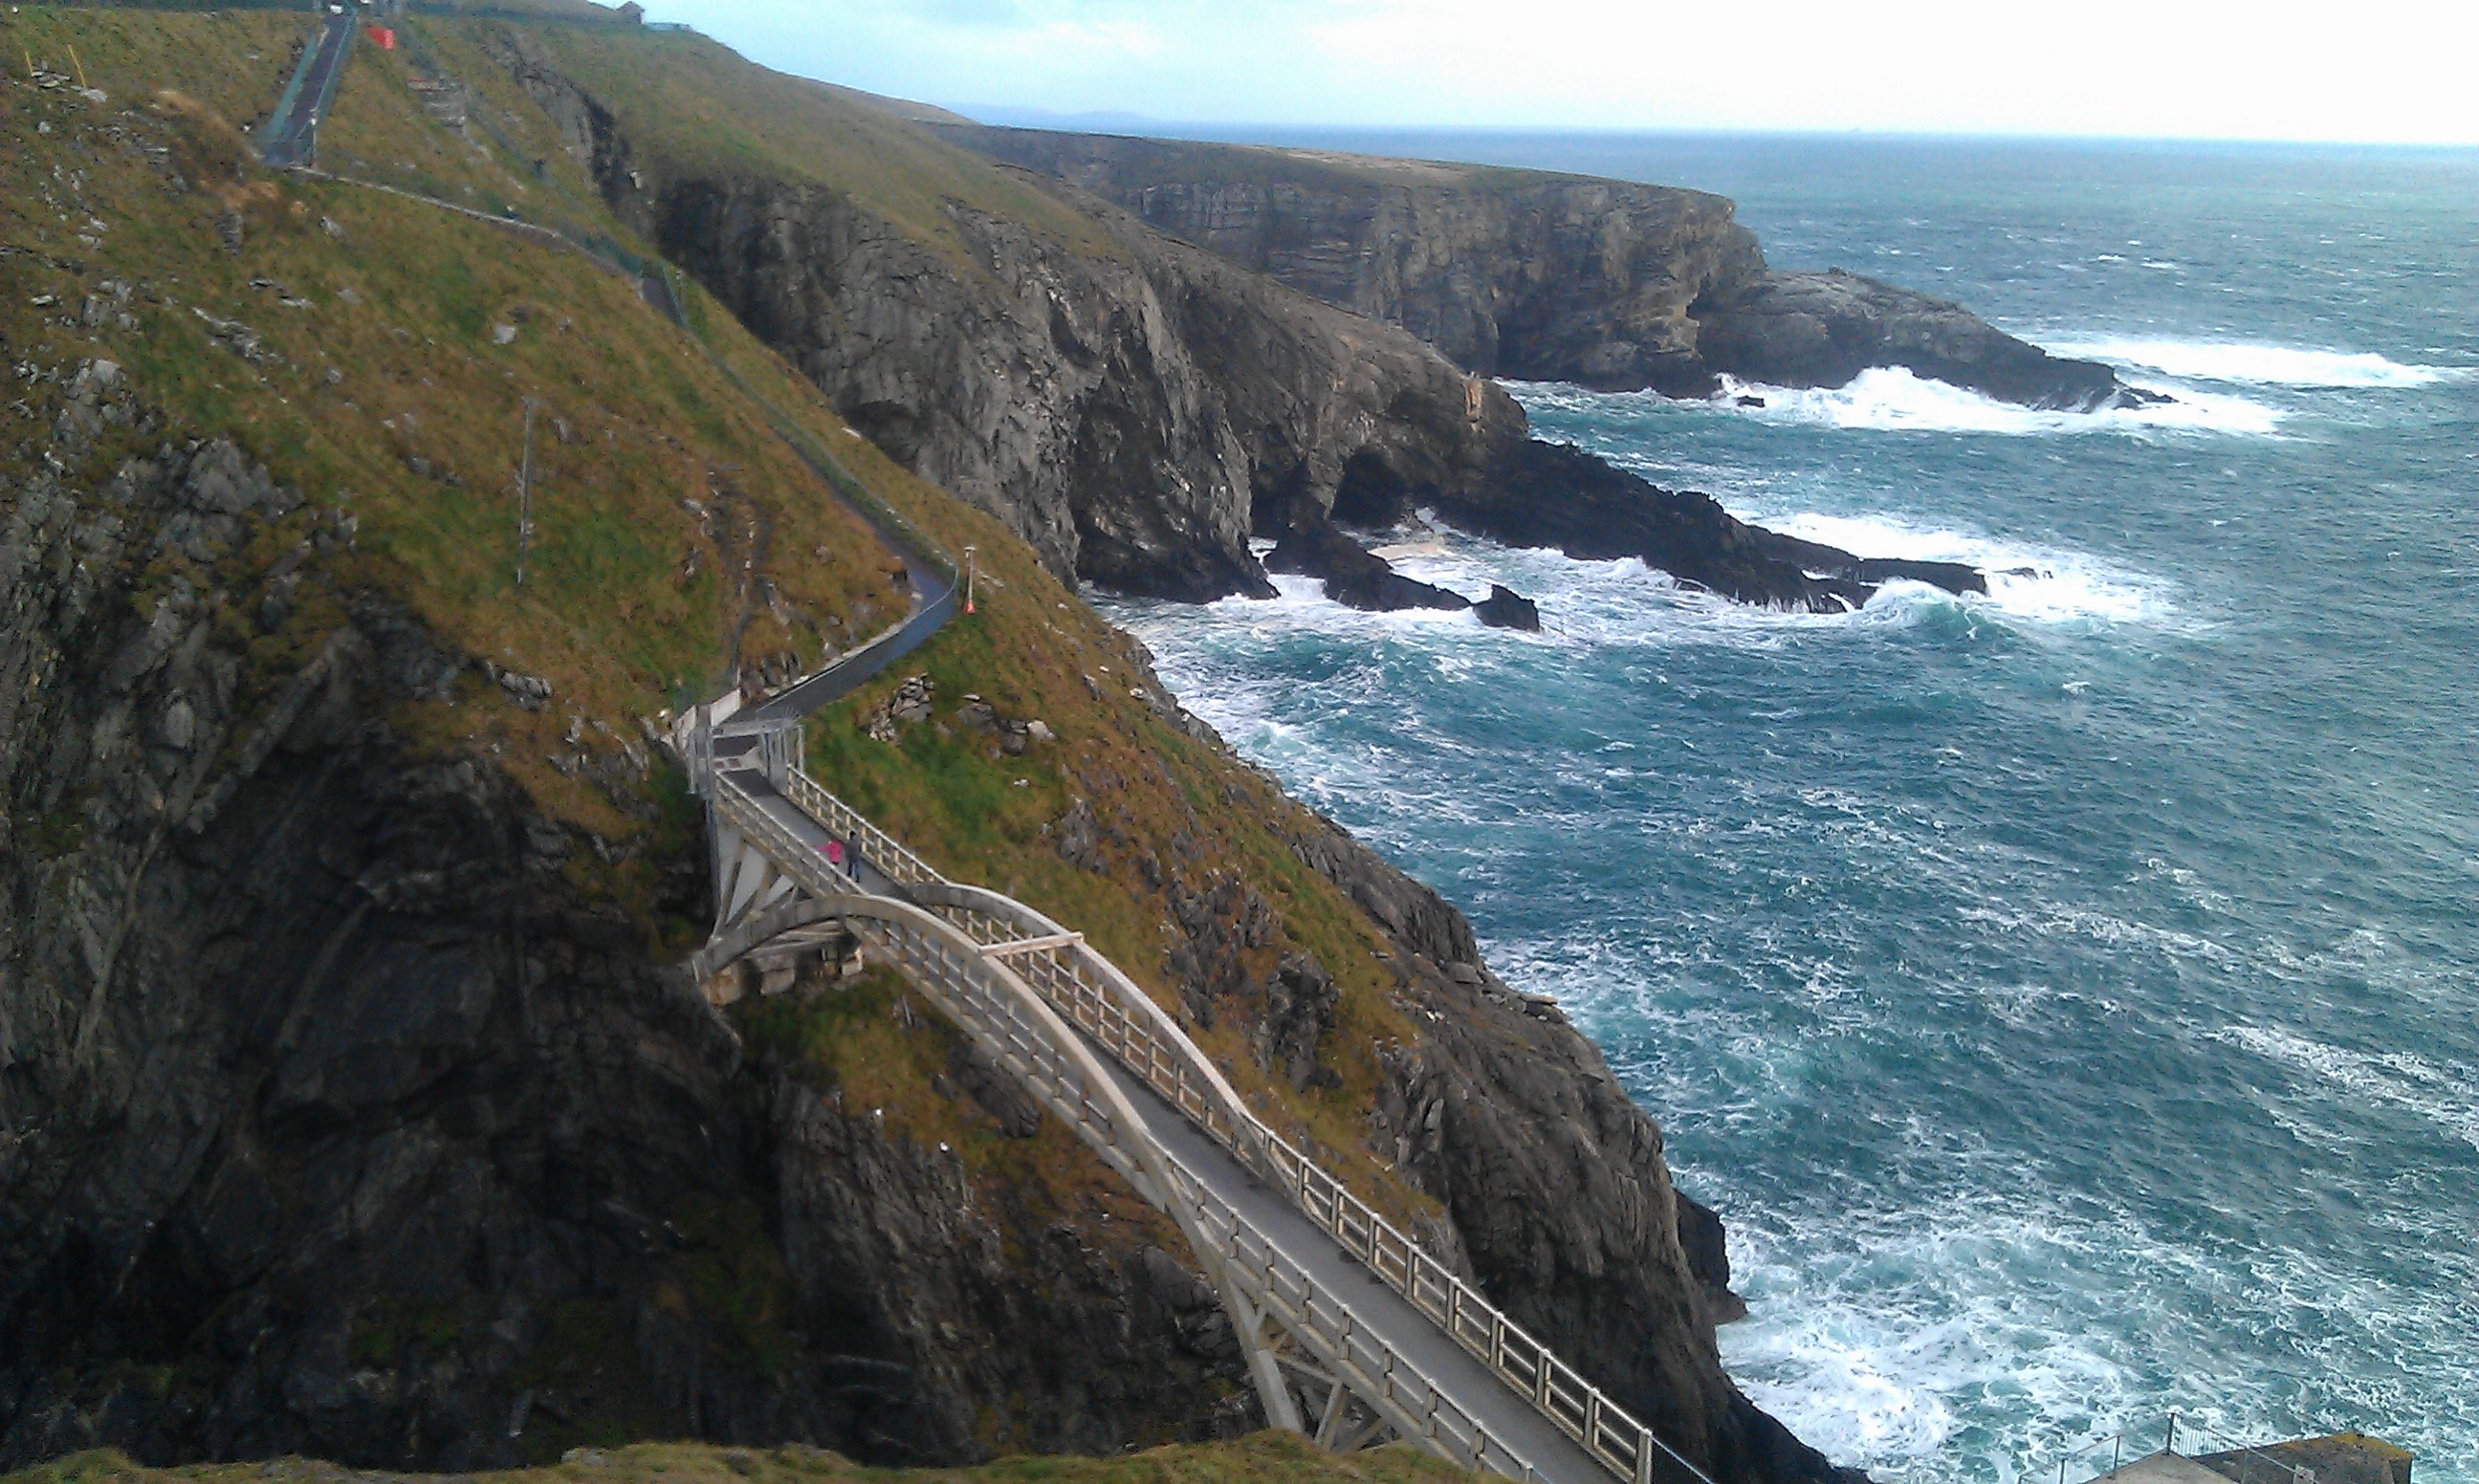 Overlooking the spectacular bridge at Mizen Head-Suzanne Burns